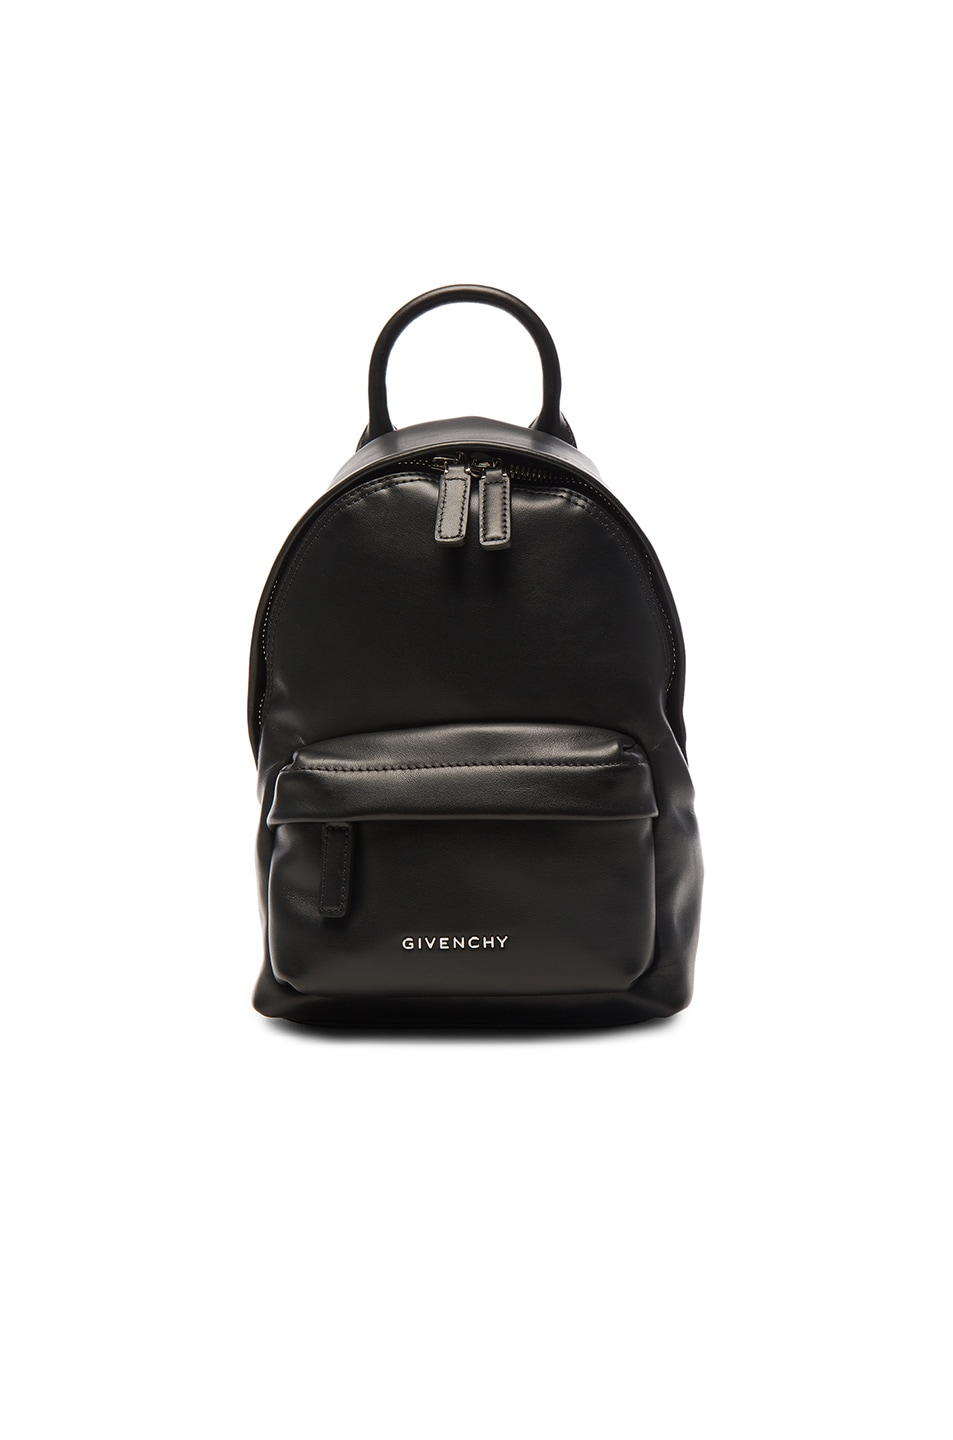 Image 1 of Givenchy Nano Smooth Leather Backpack in Black